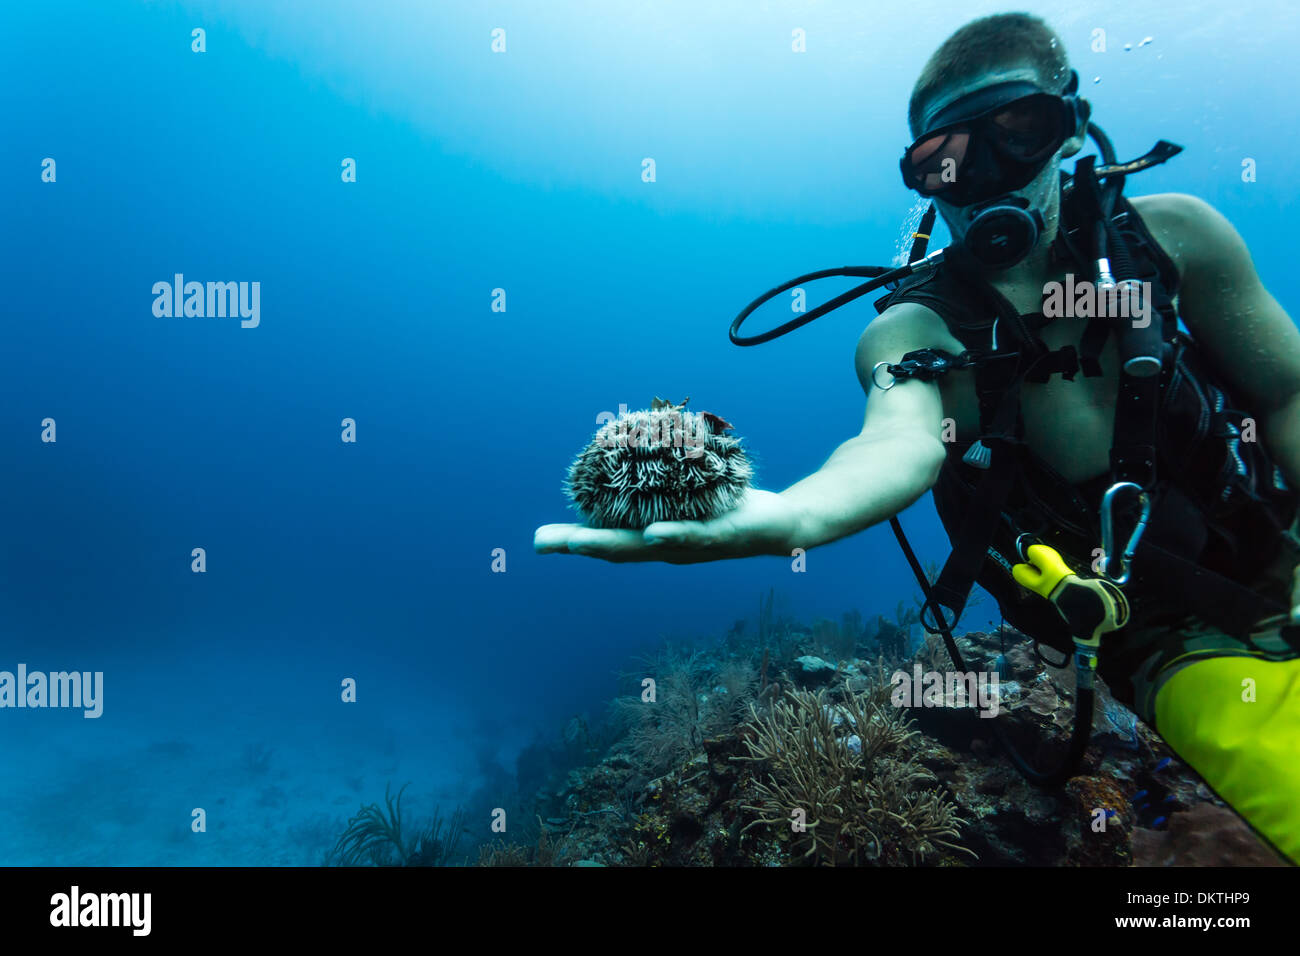 Scuba diver displays large sea urchin on hand while diving at coral reef in the Caribbean Sea off the coast of Belize - Stock Image